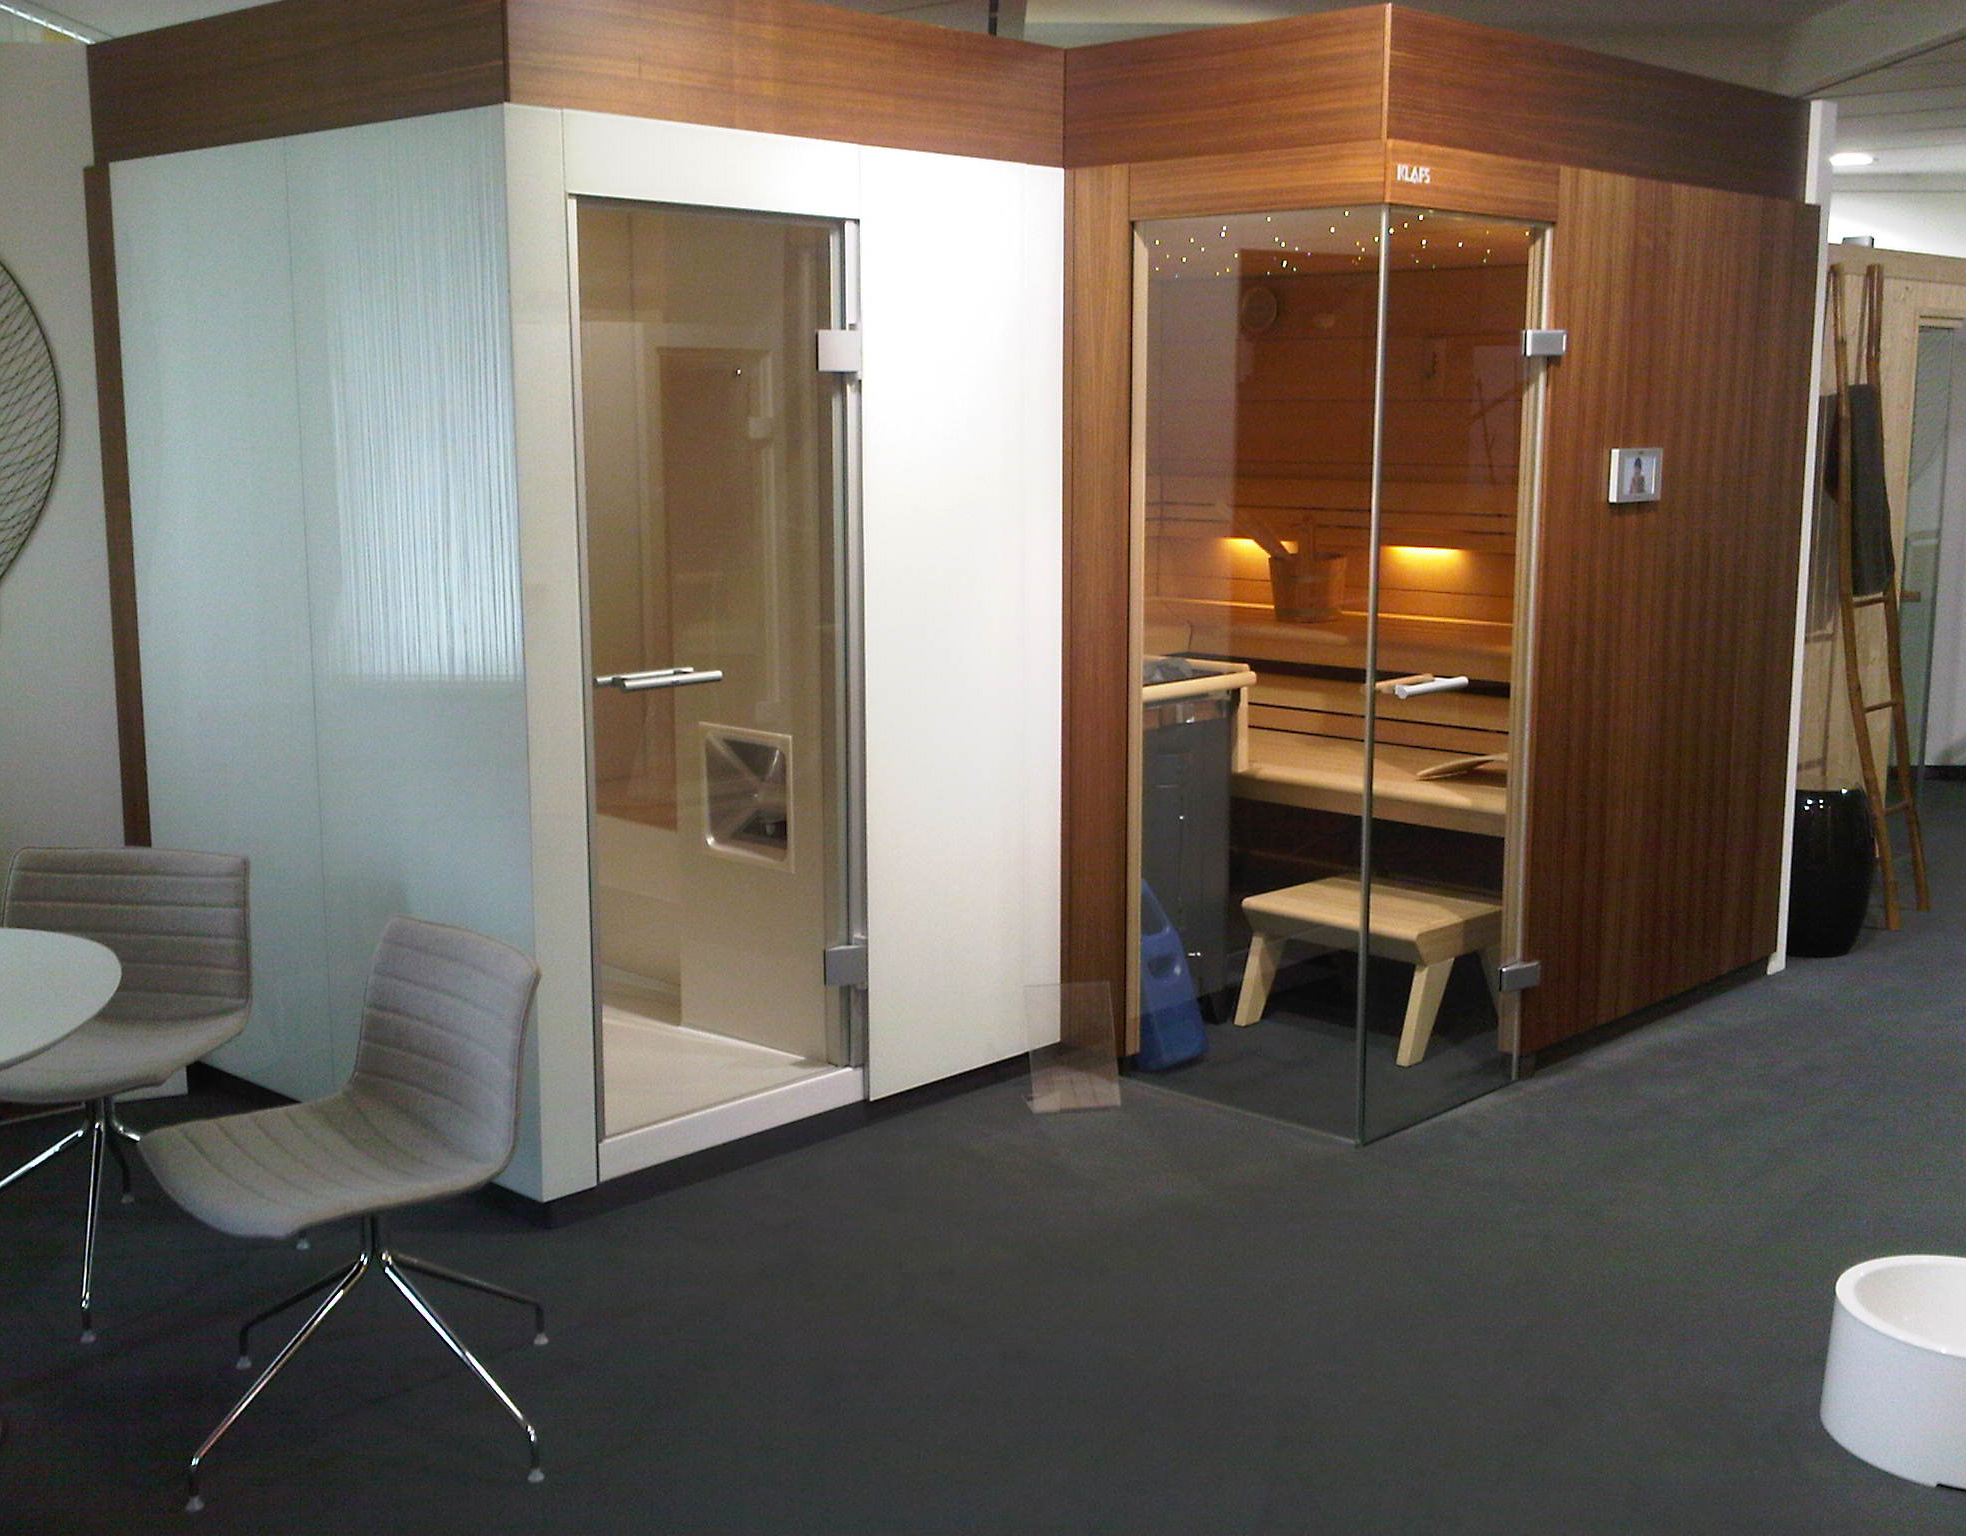 sauna ausstellung in villingen schwenningen. Black Bedroom Furniture Sets. Home Design Ideas